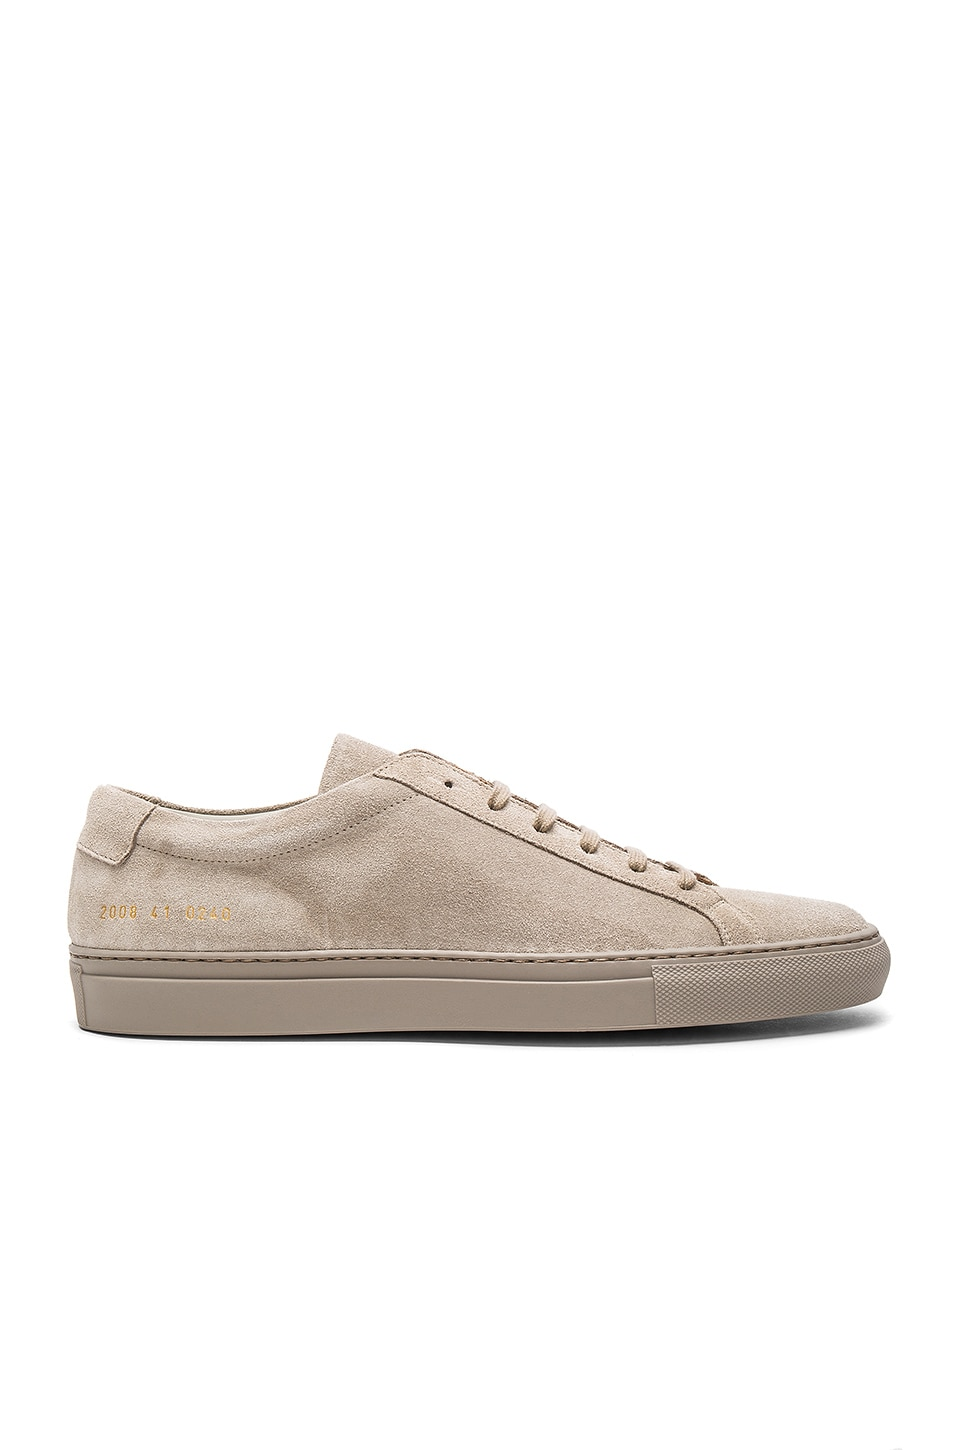 COMMON PROJECTS ORIGINAL ACHILLES SUEDE LOW